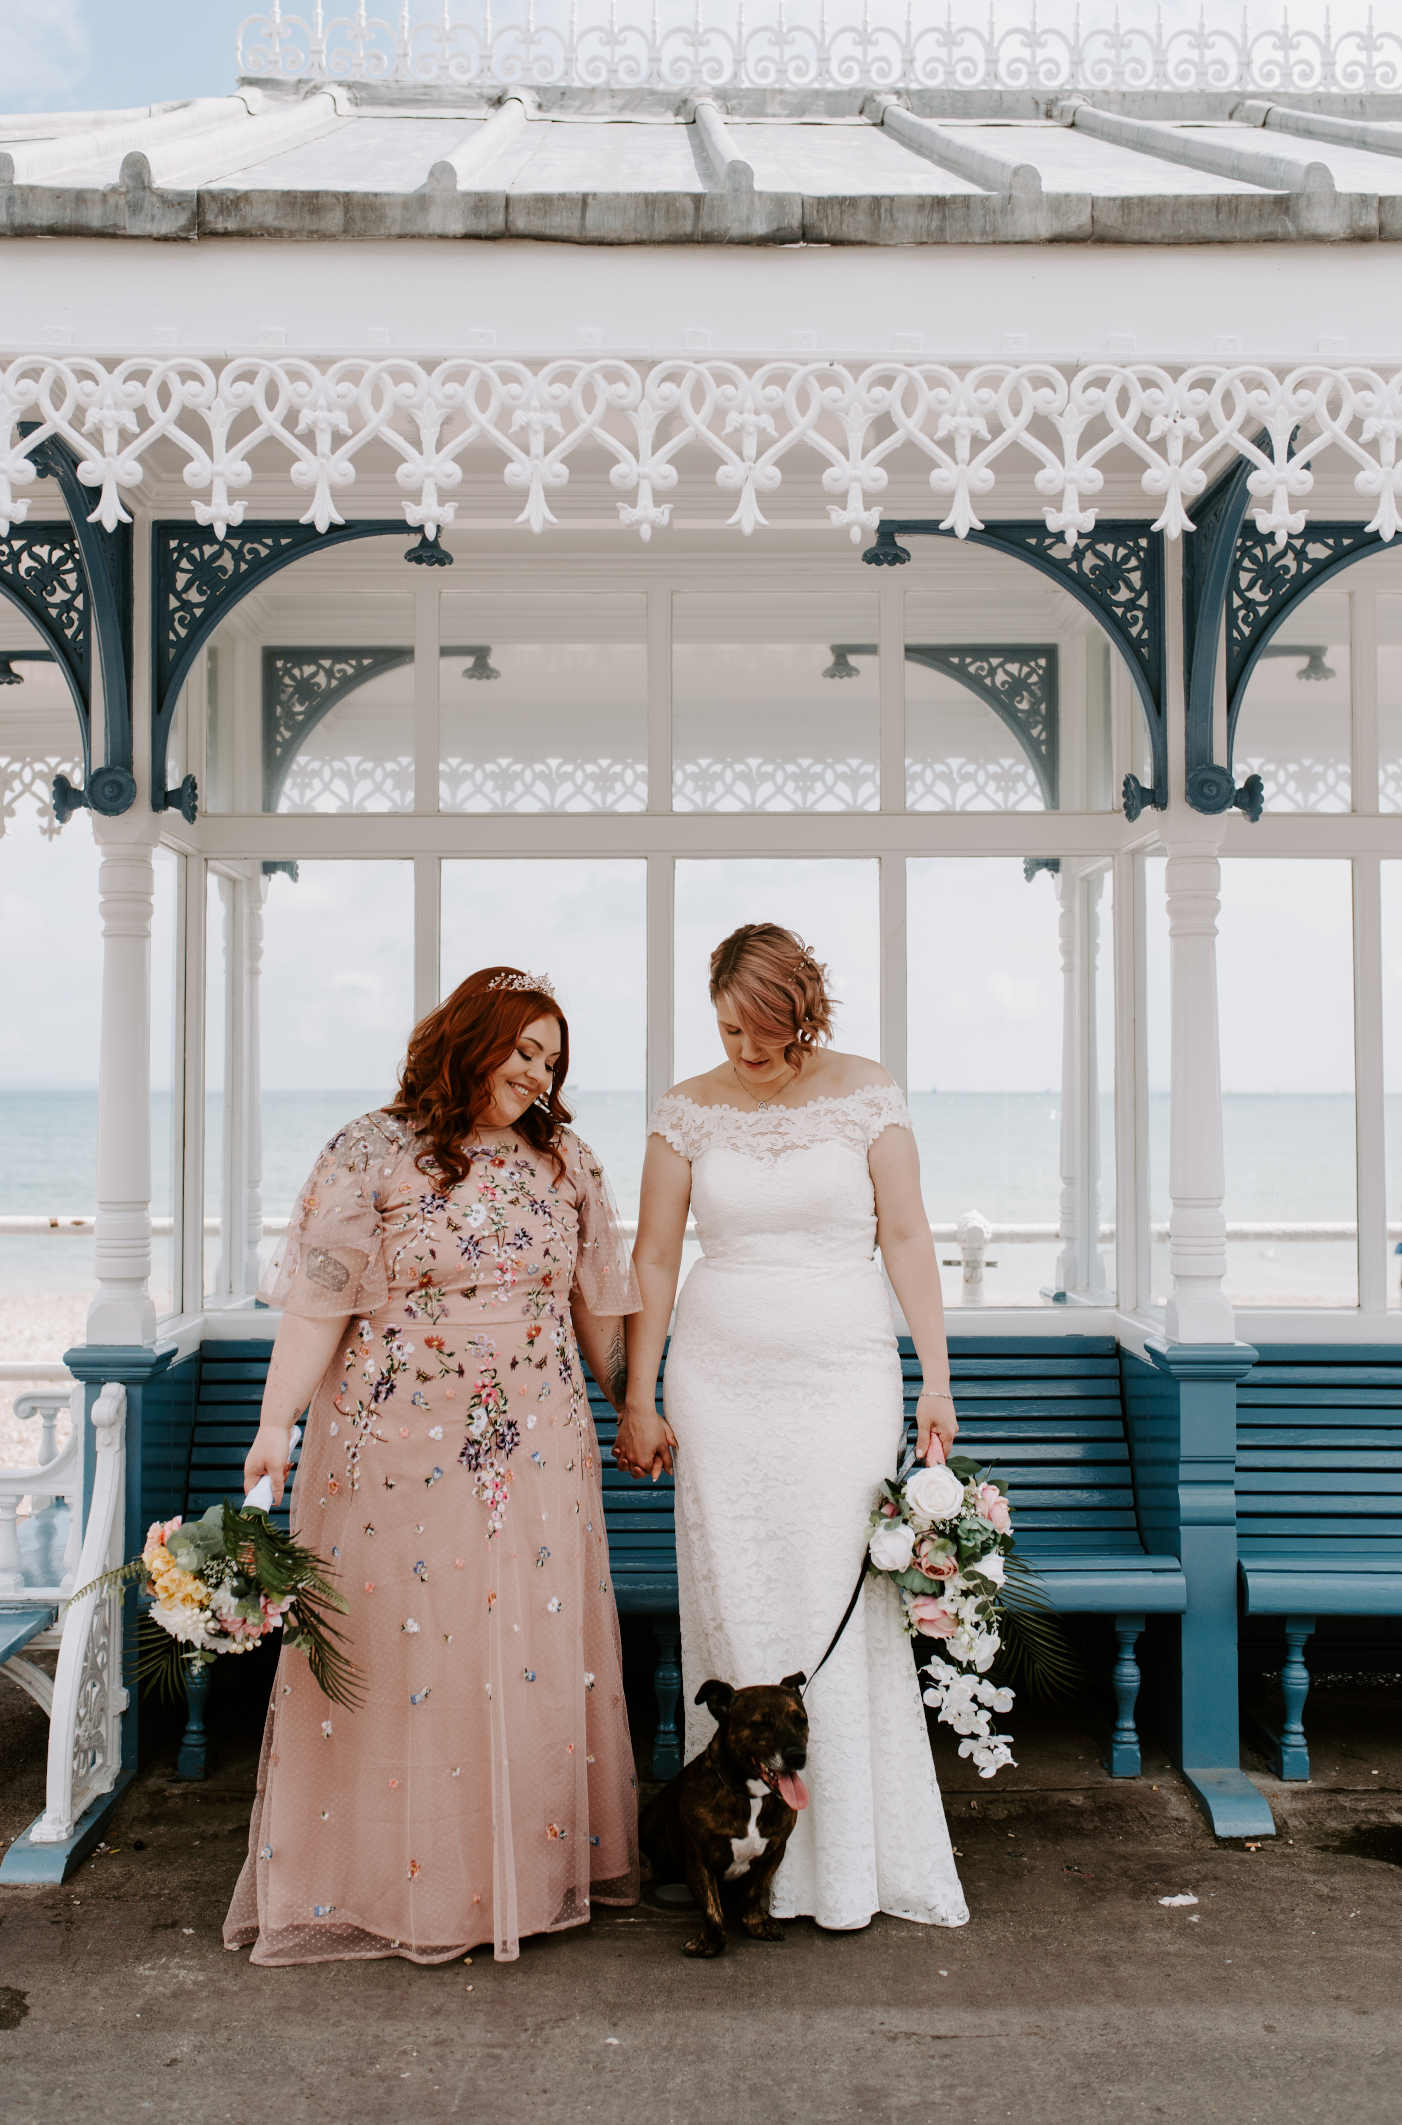 Emma and Abi in their wedding dresses holding hands with Tia the staffie in the middle. They are in a victorian shelter on weymouth seafront.